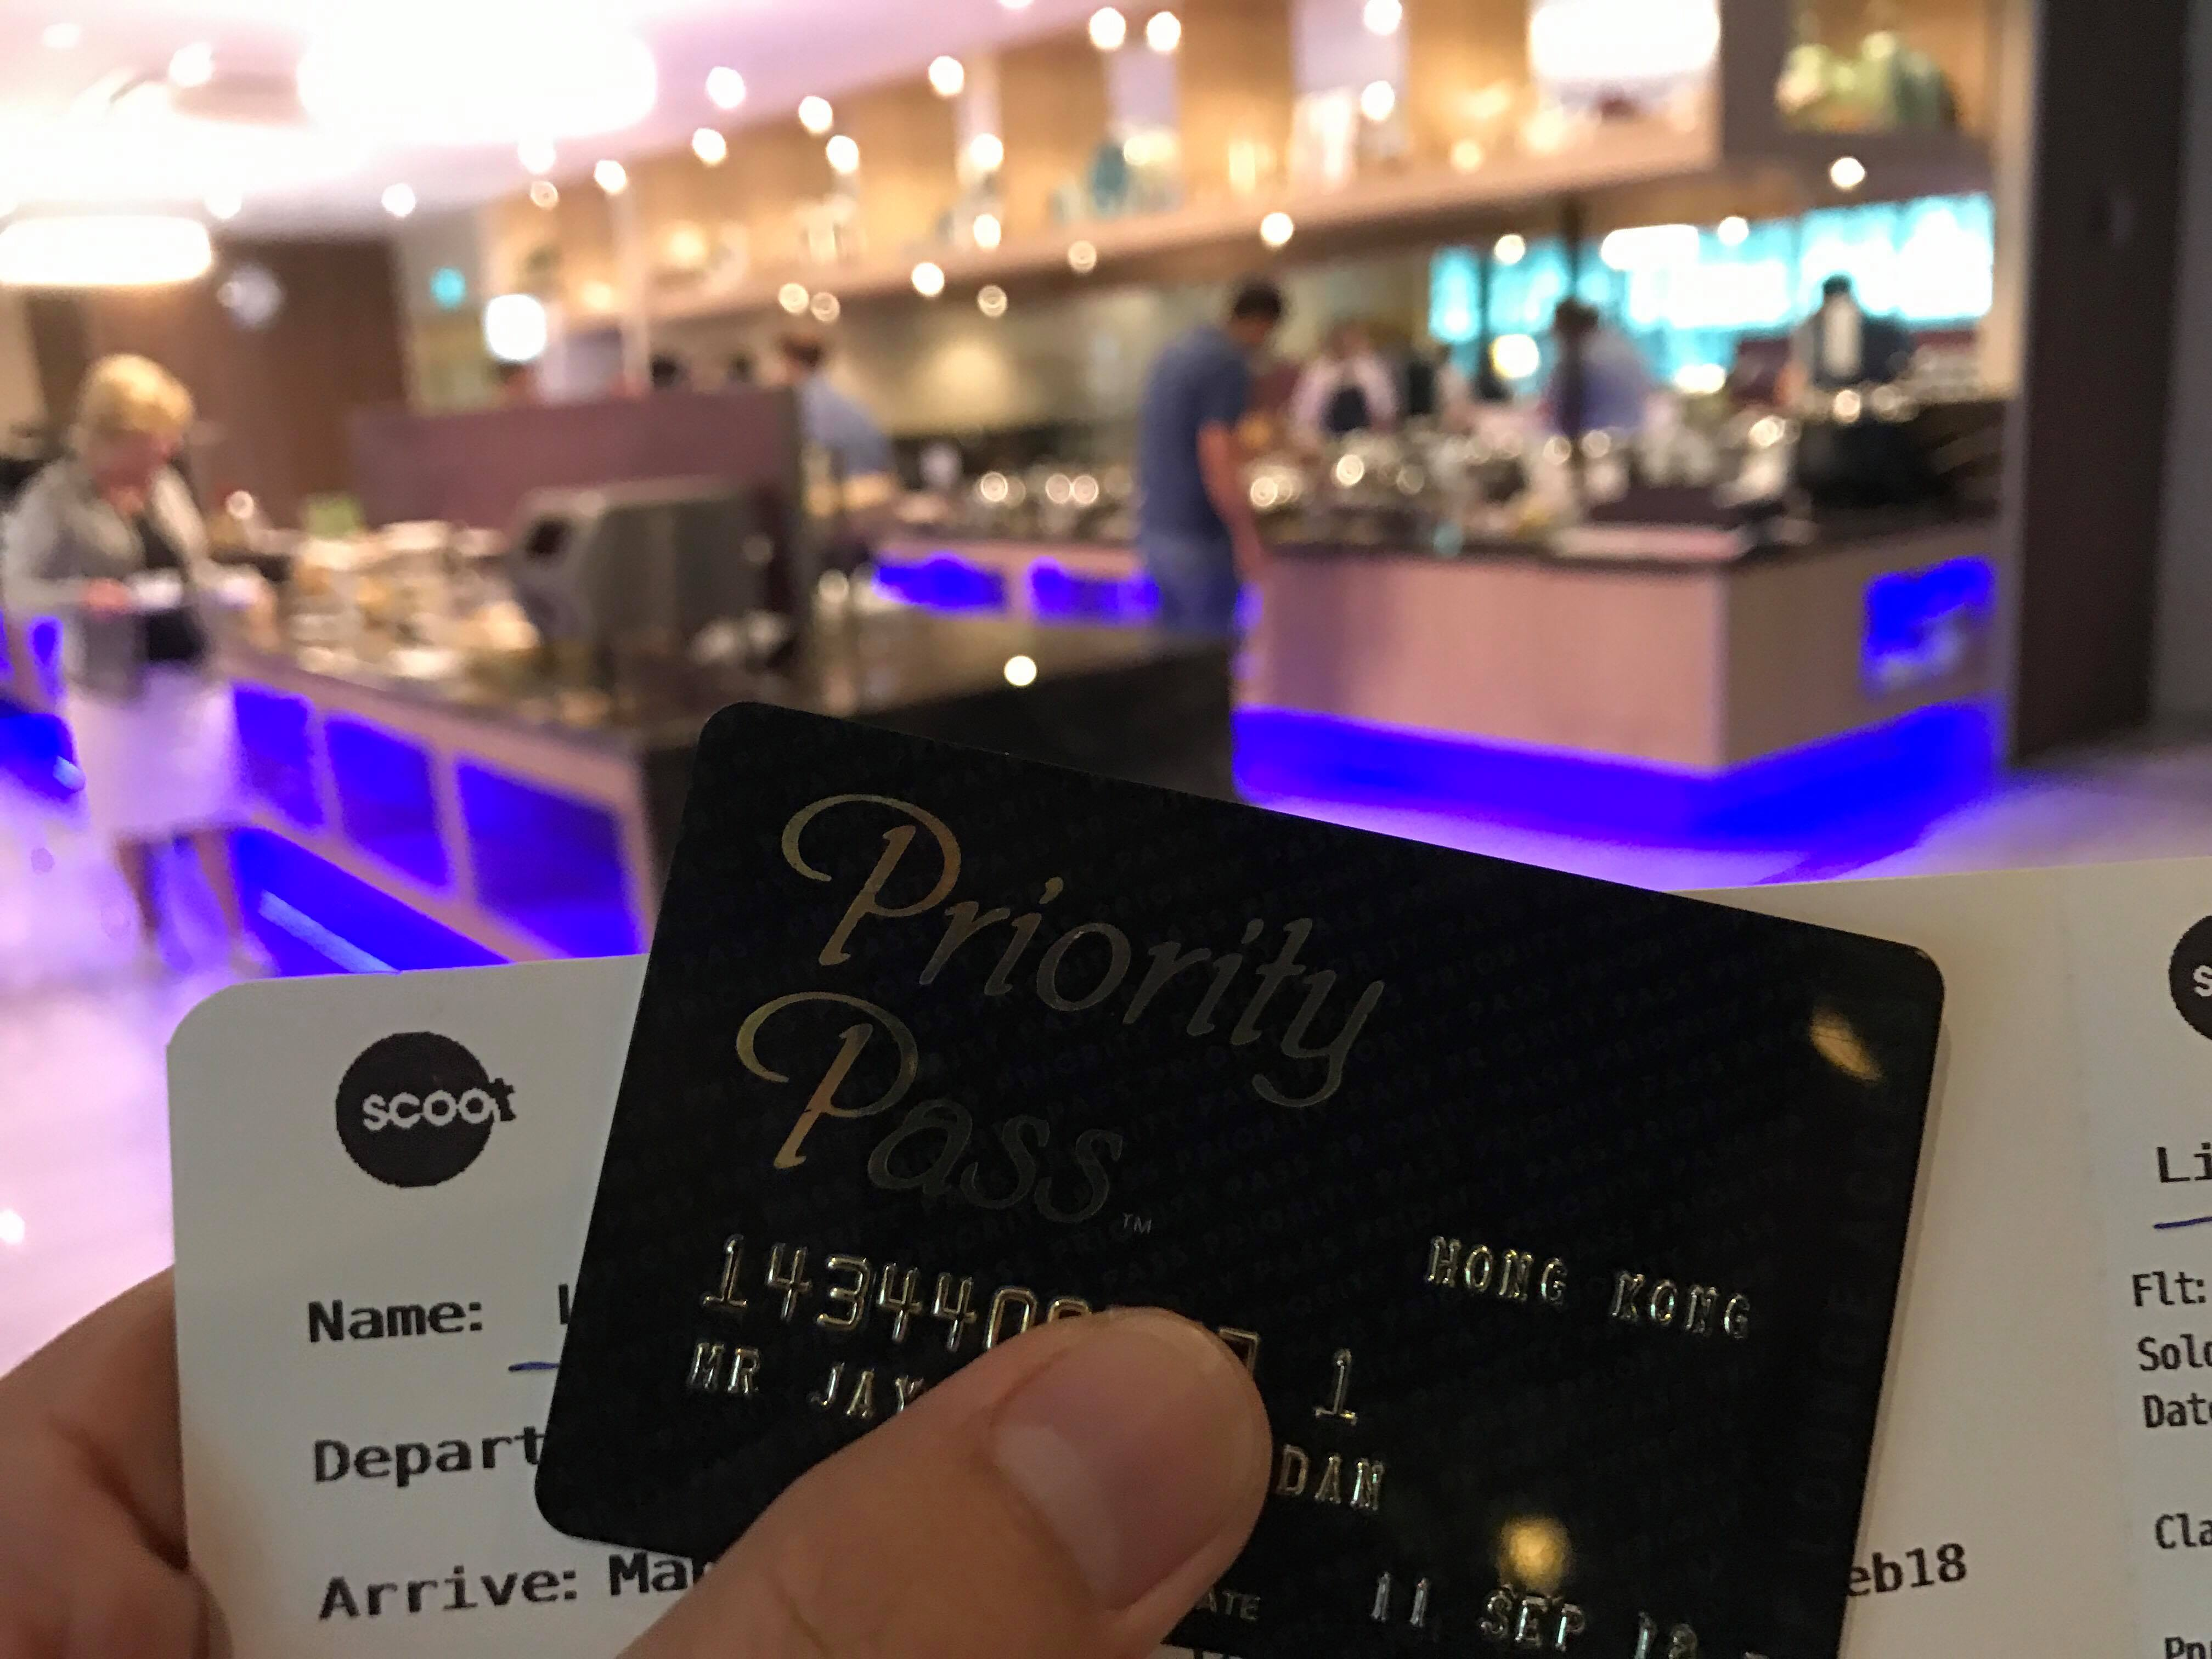 How To Get Free Access To Airport Lounges - The Rustic Nomad